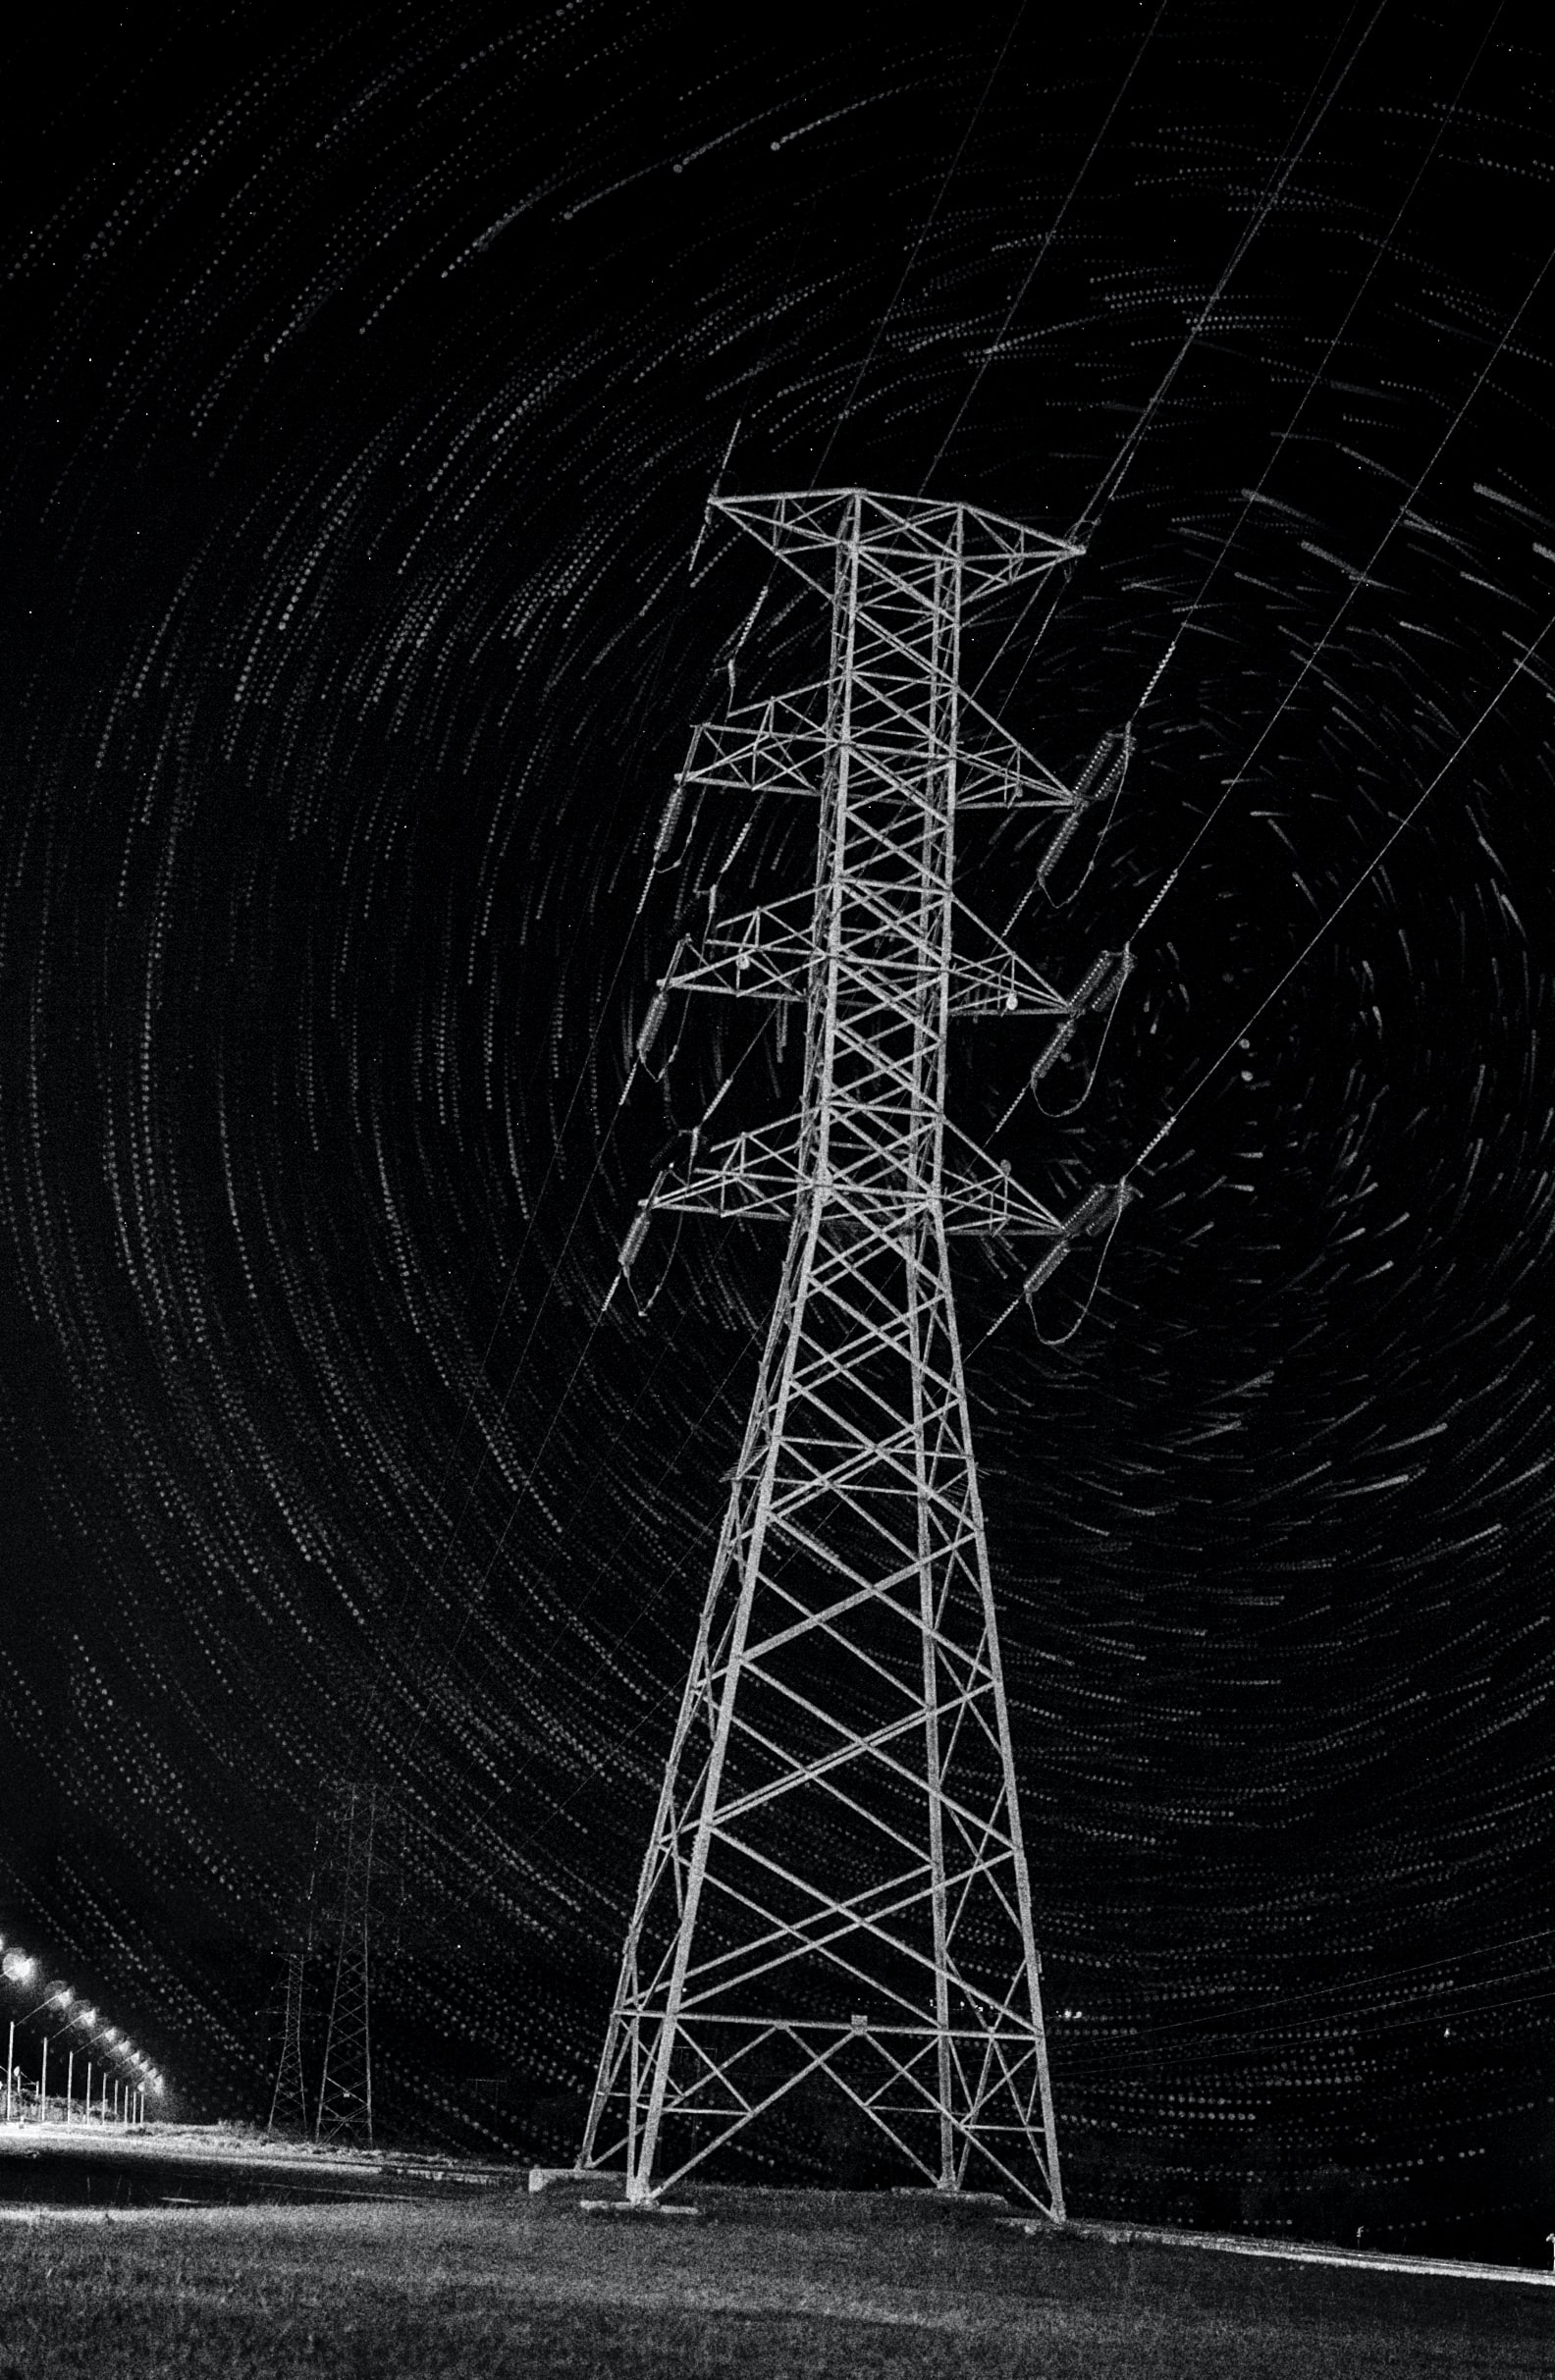 time lapse photography of transmission tower